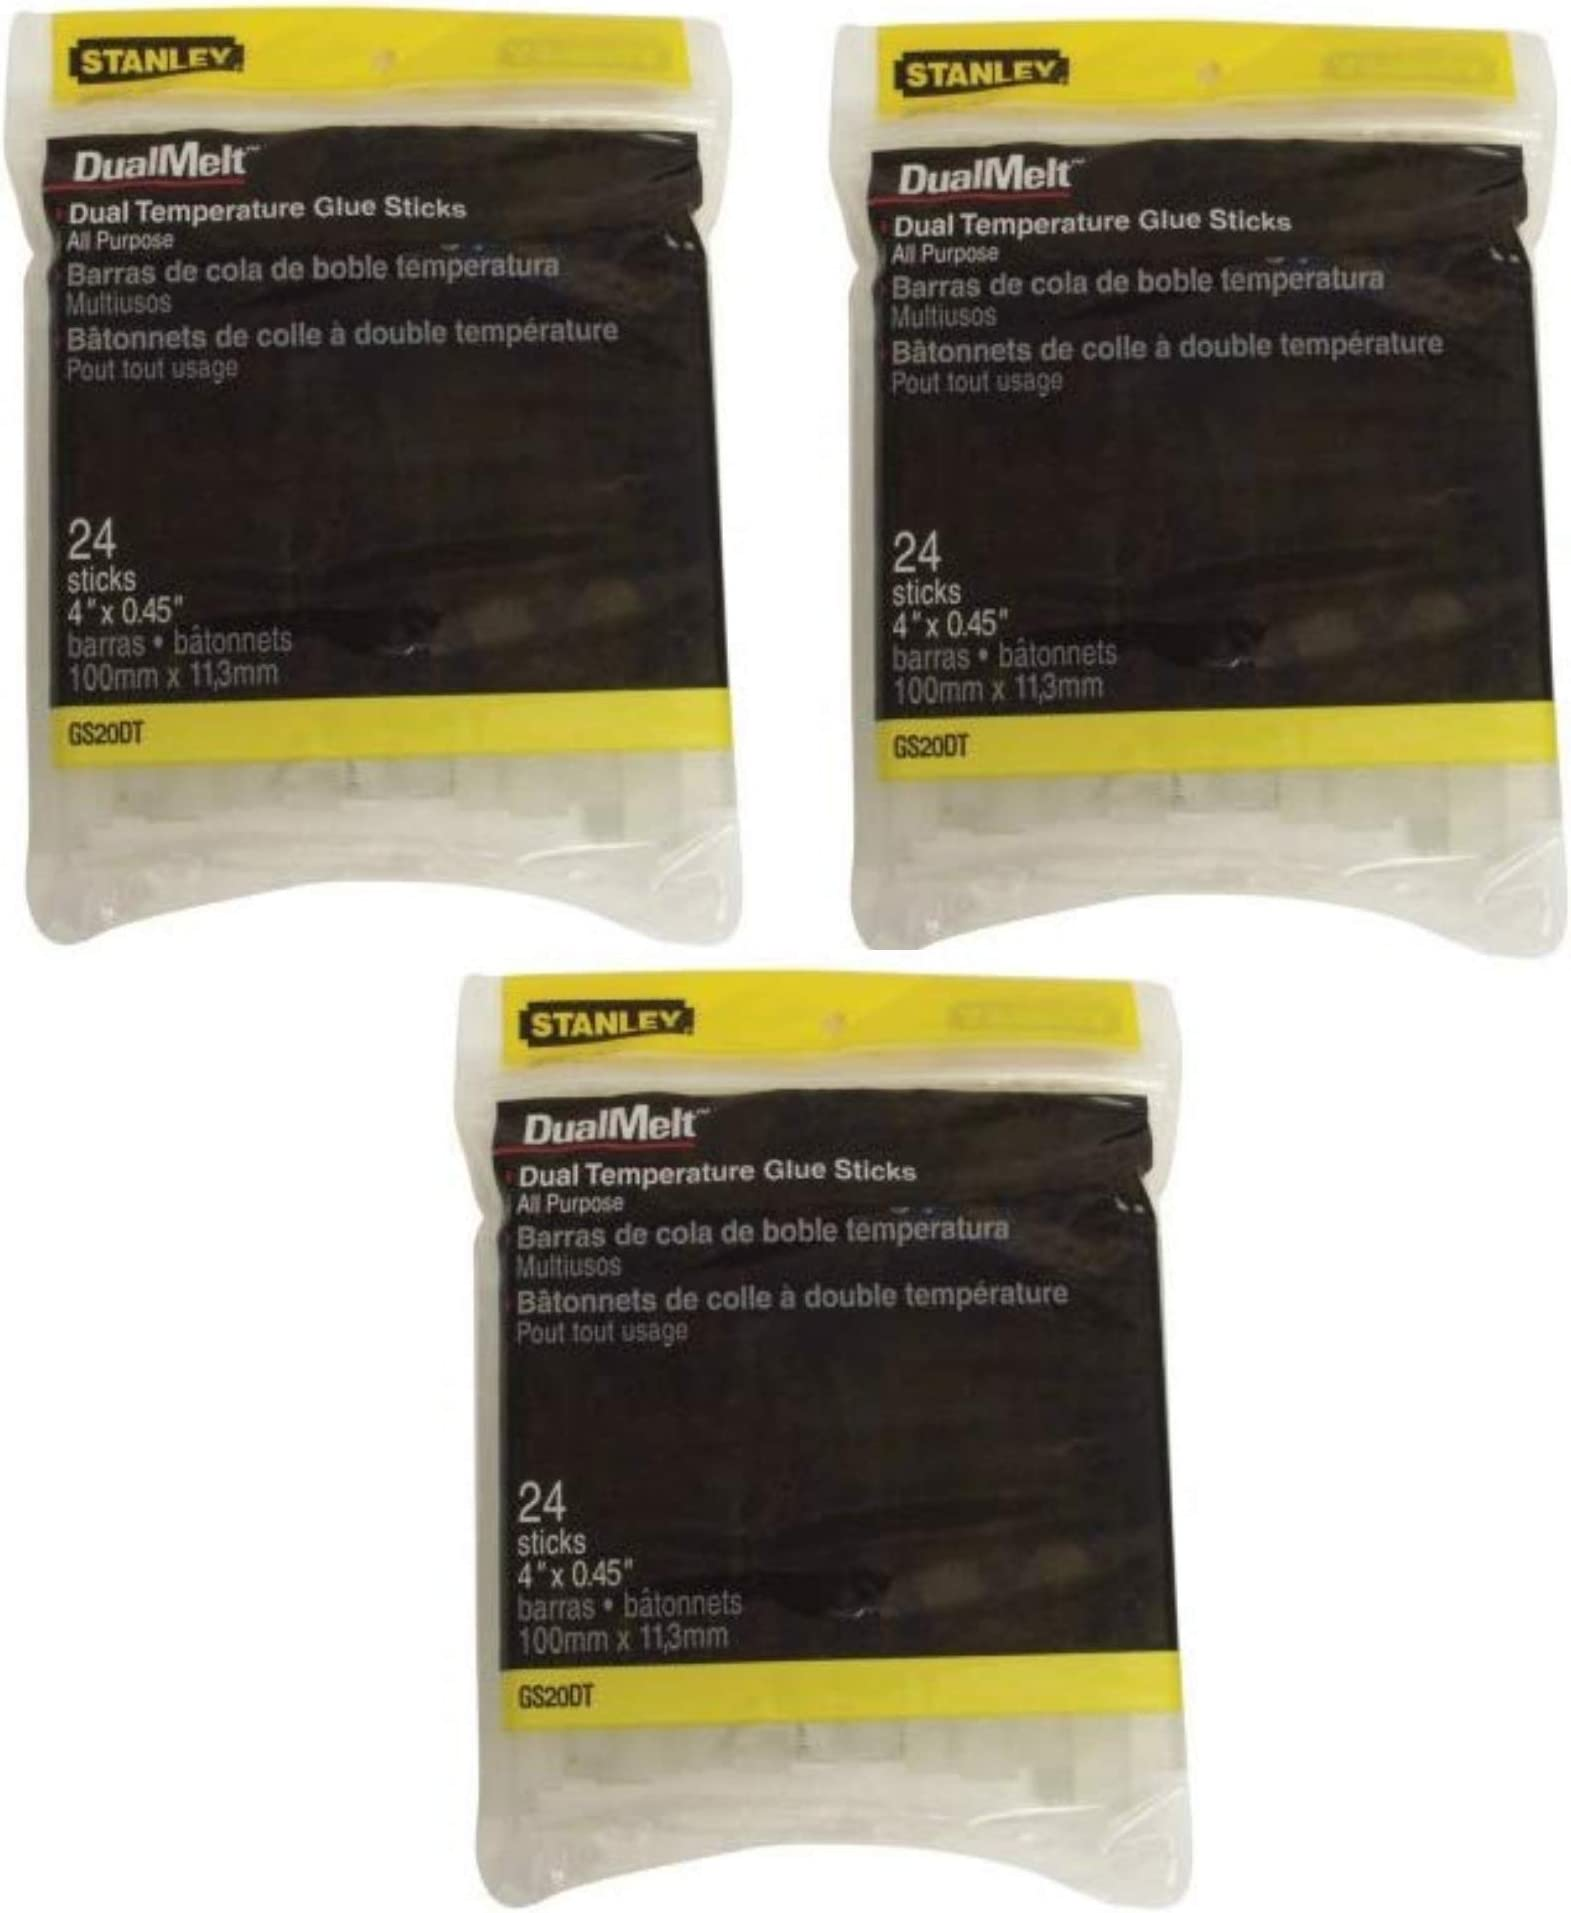 Stanley GS20DT Dual Temperature 4-Inch Glue Sticks, 24-Pack, 3 Pack